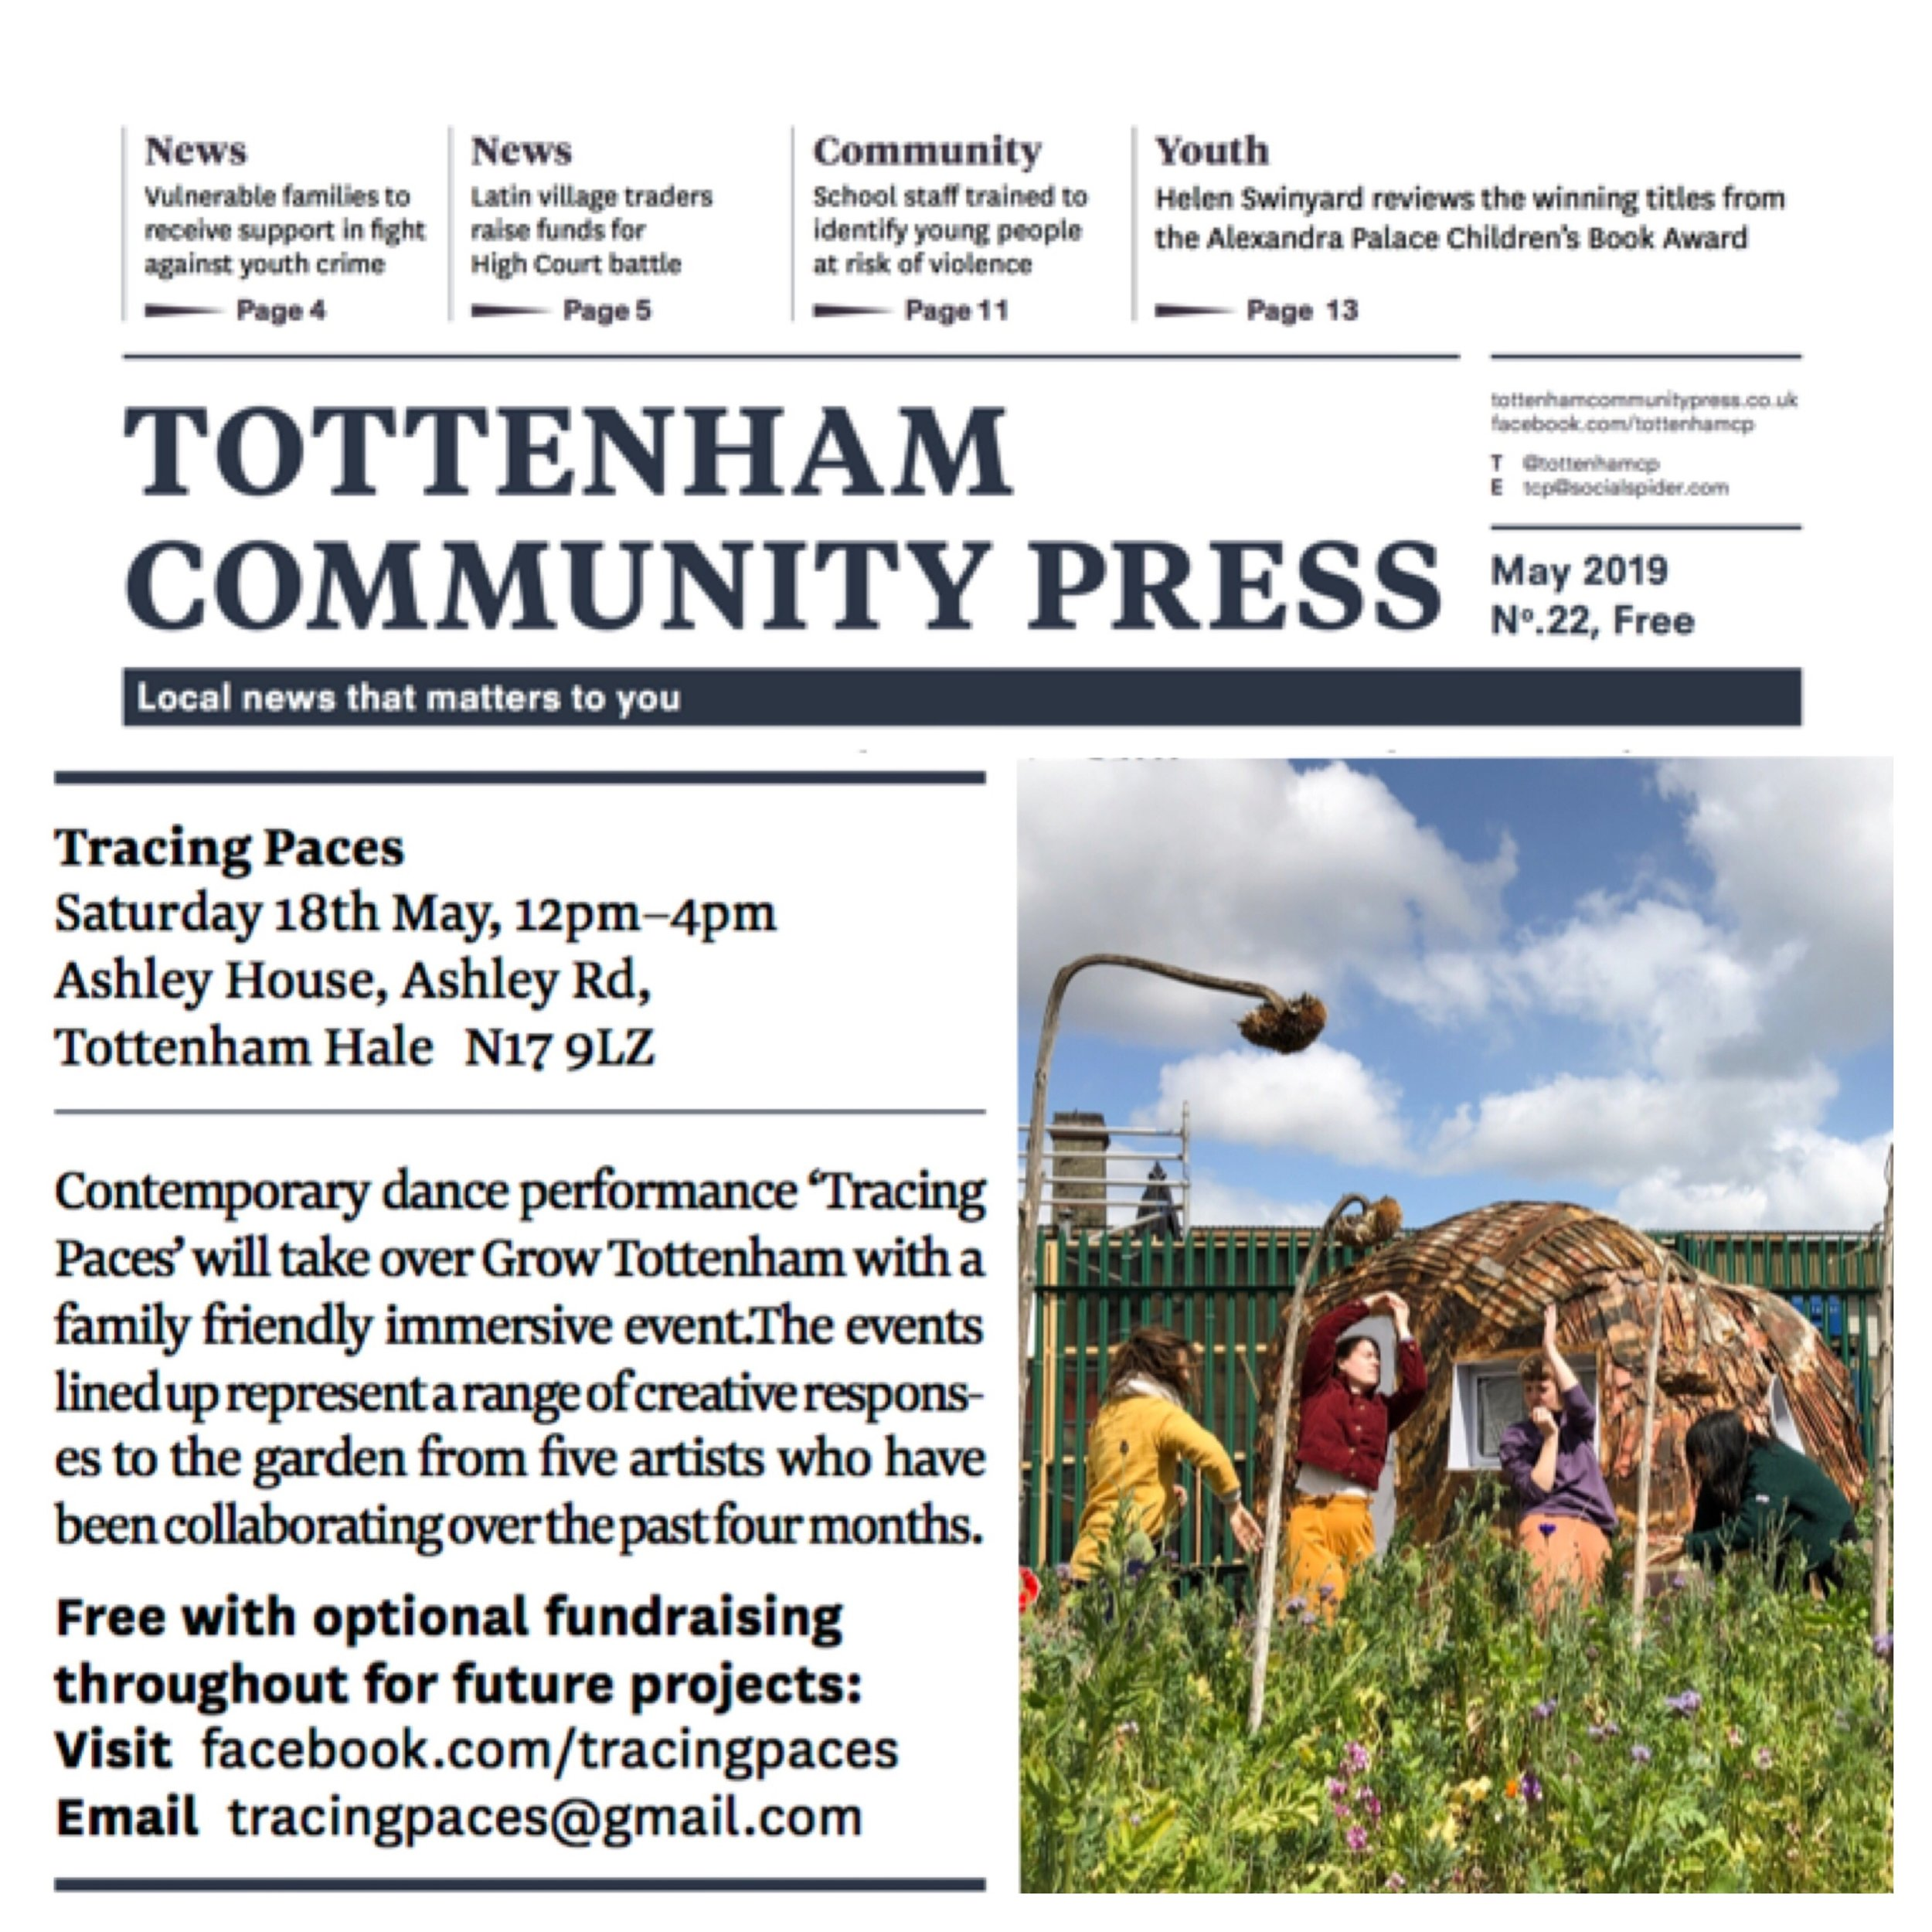 Tracing Paces in Tottenham Community Press